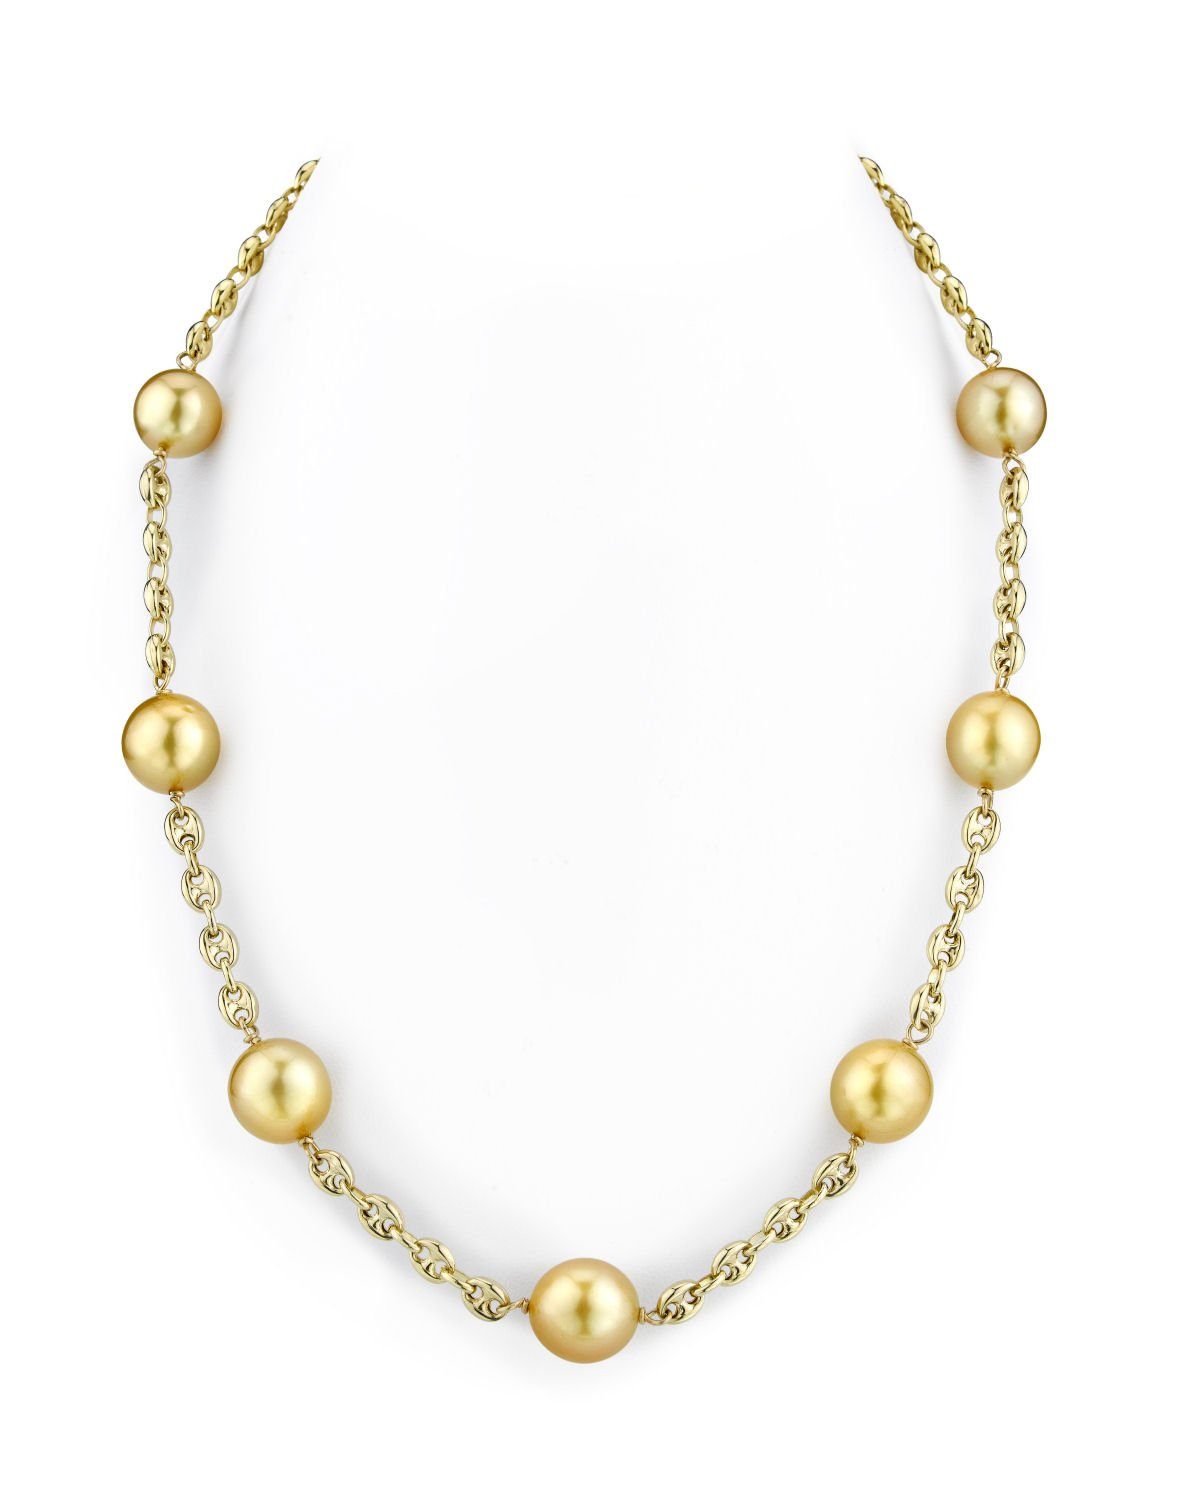 14K Gold Tincup Necklace with 10-11mm Dark Golden Pearls